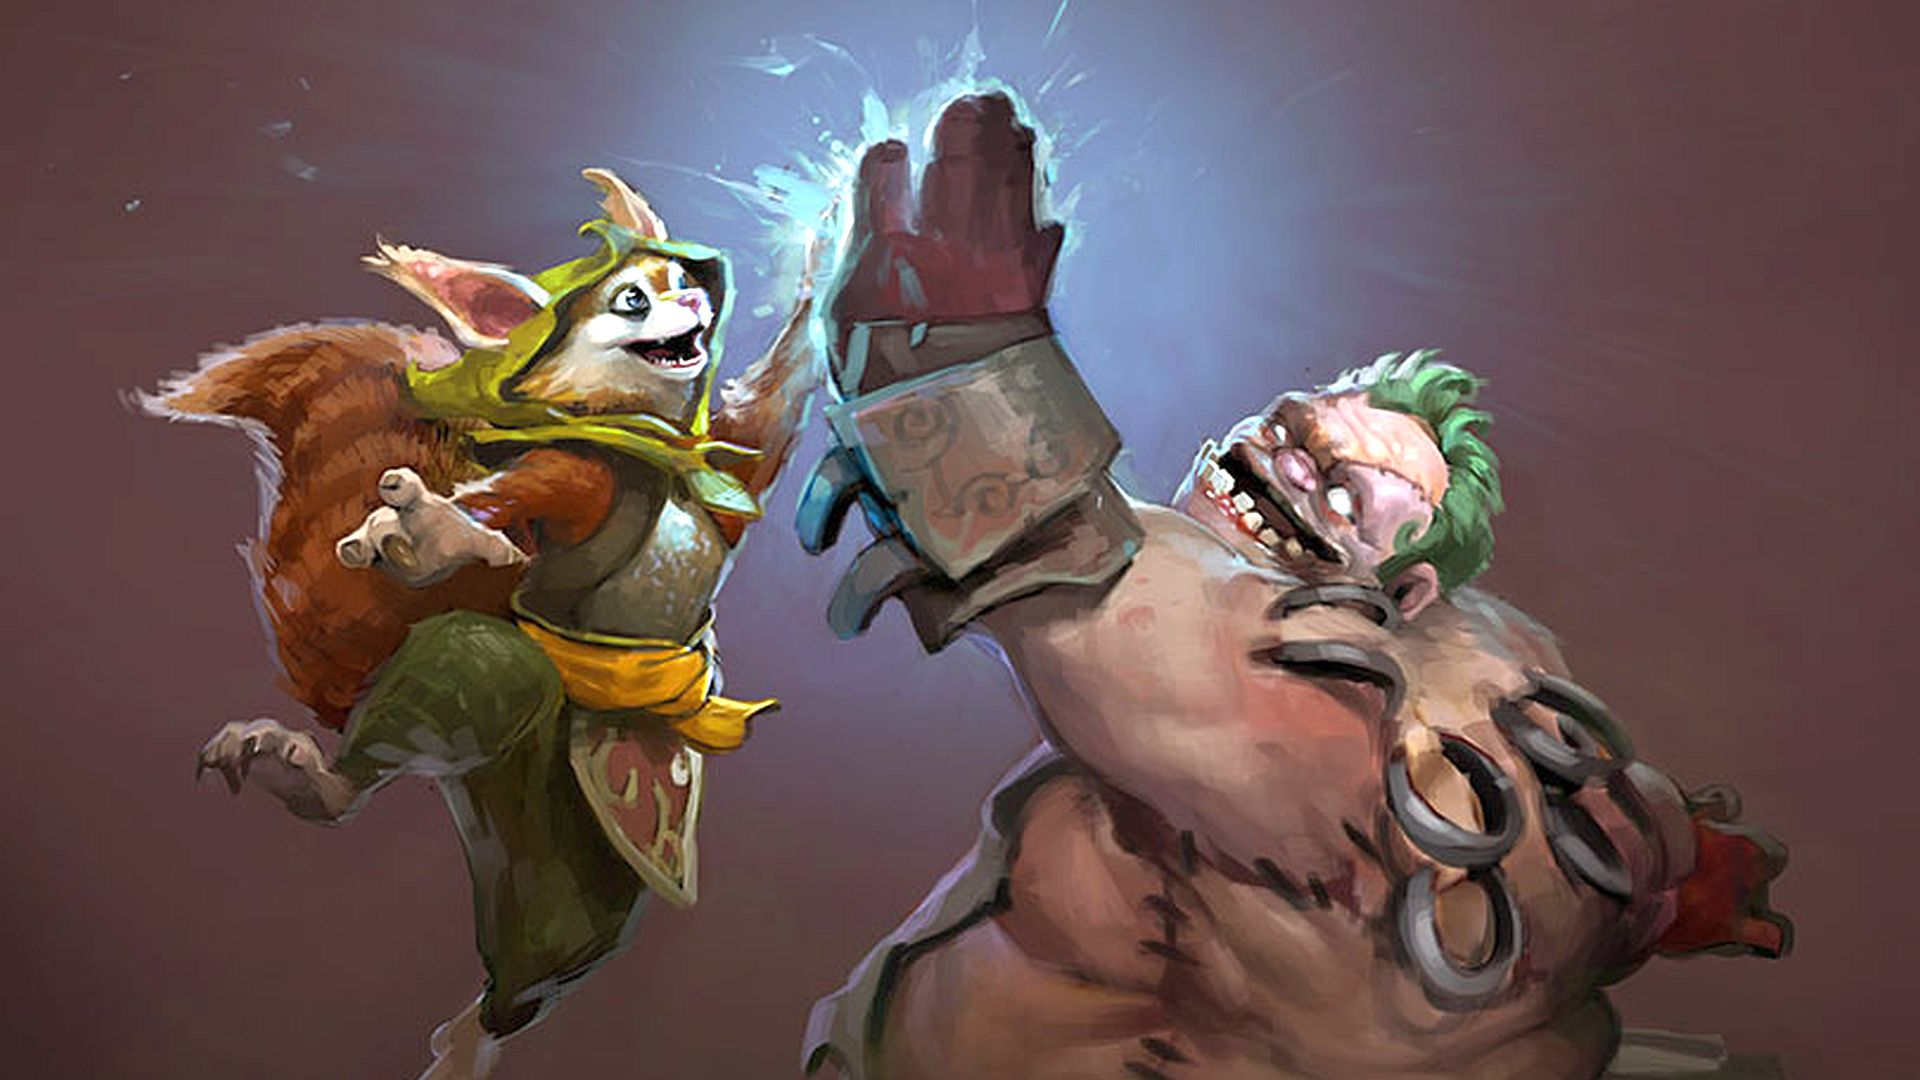 Dota 2 is getting an all-new summer event later this week